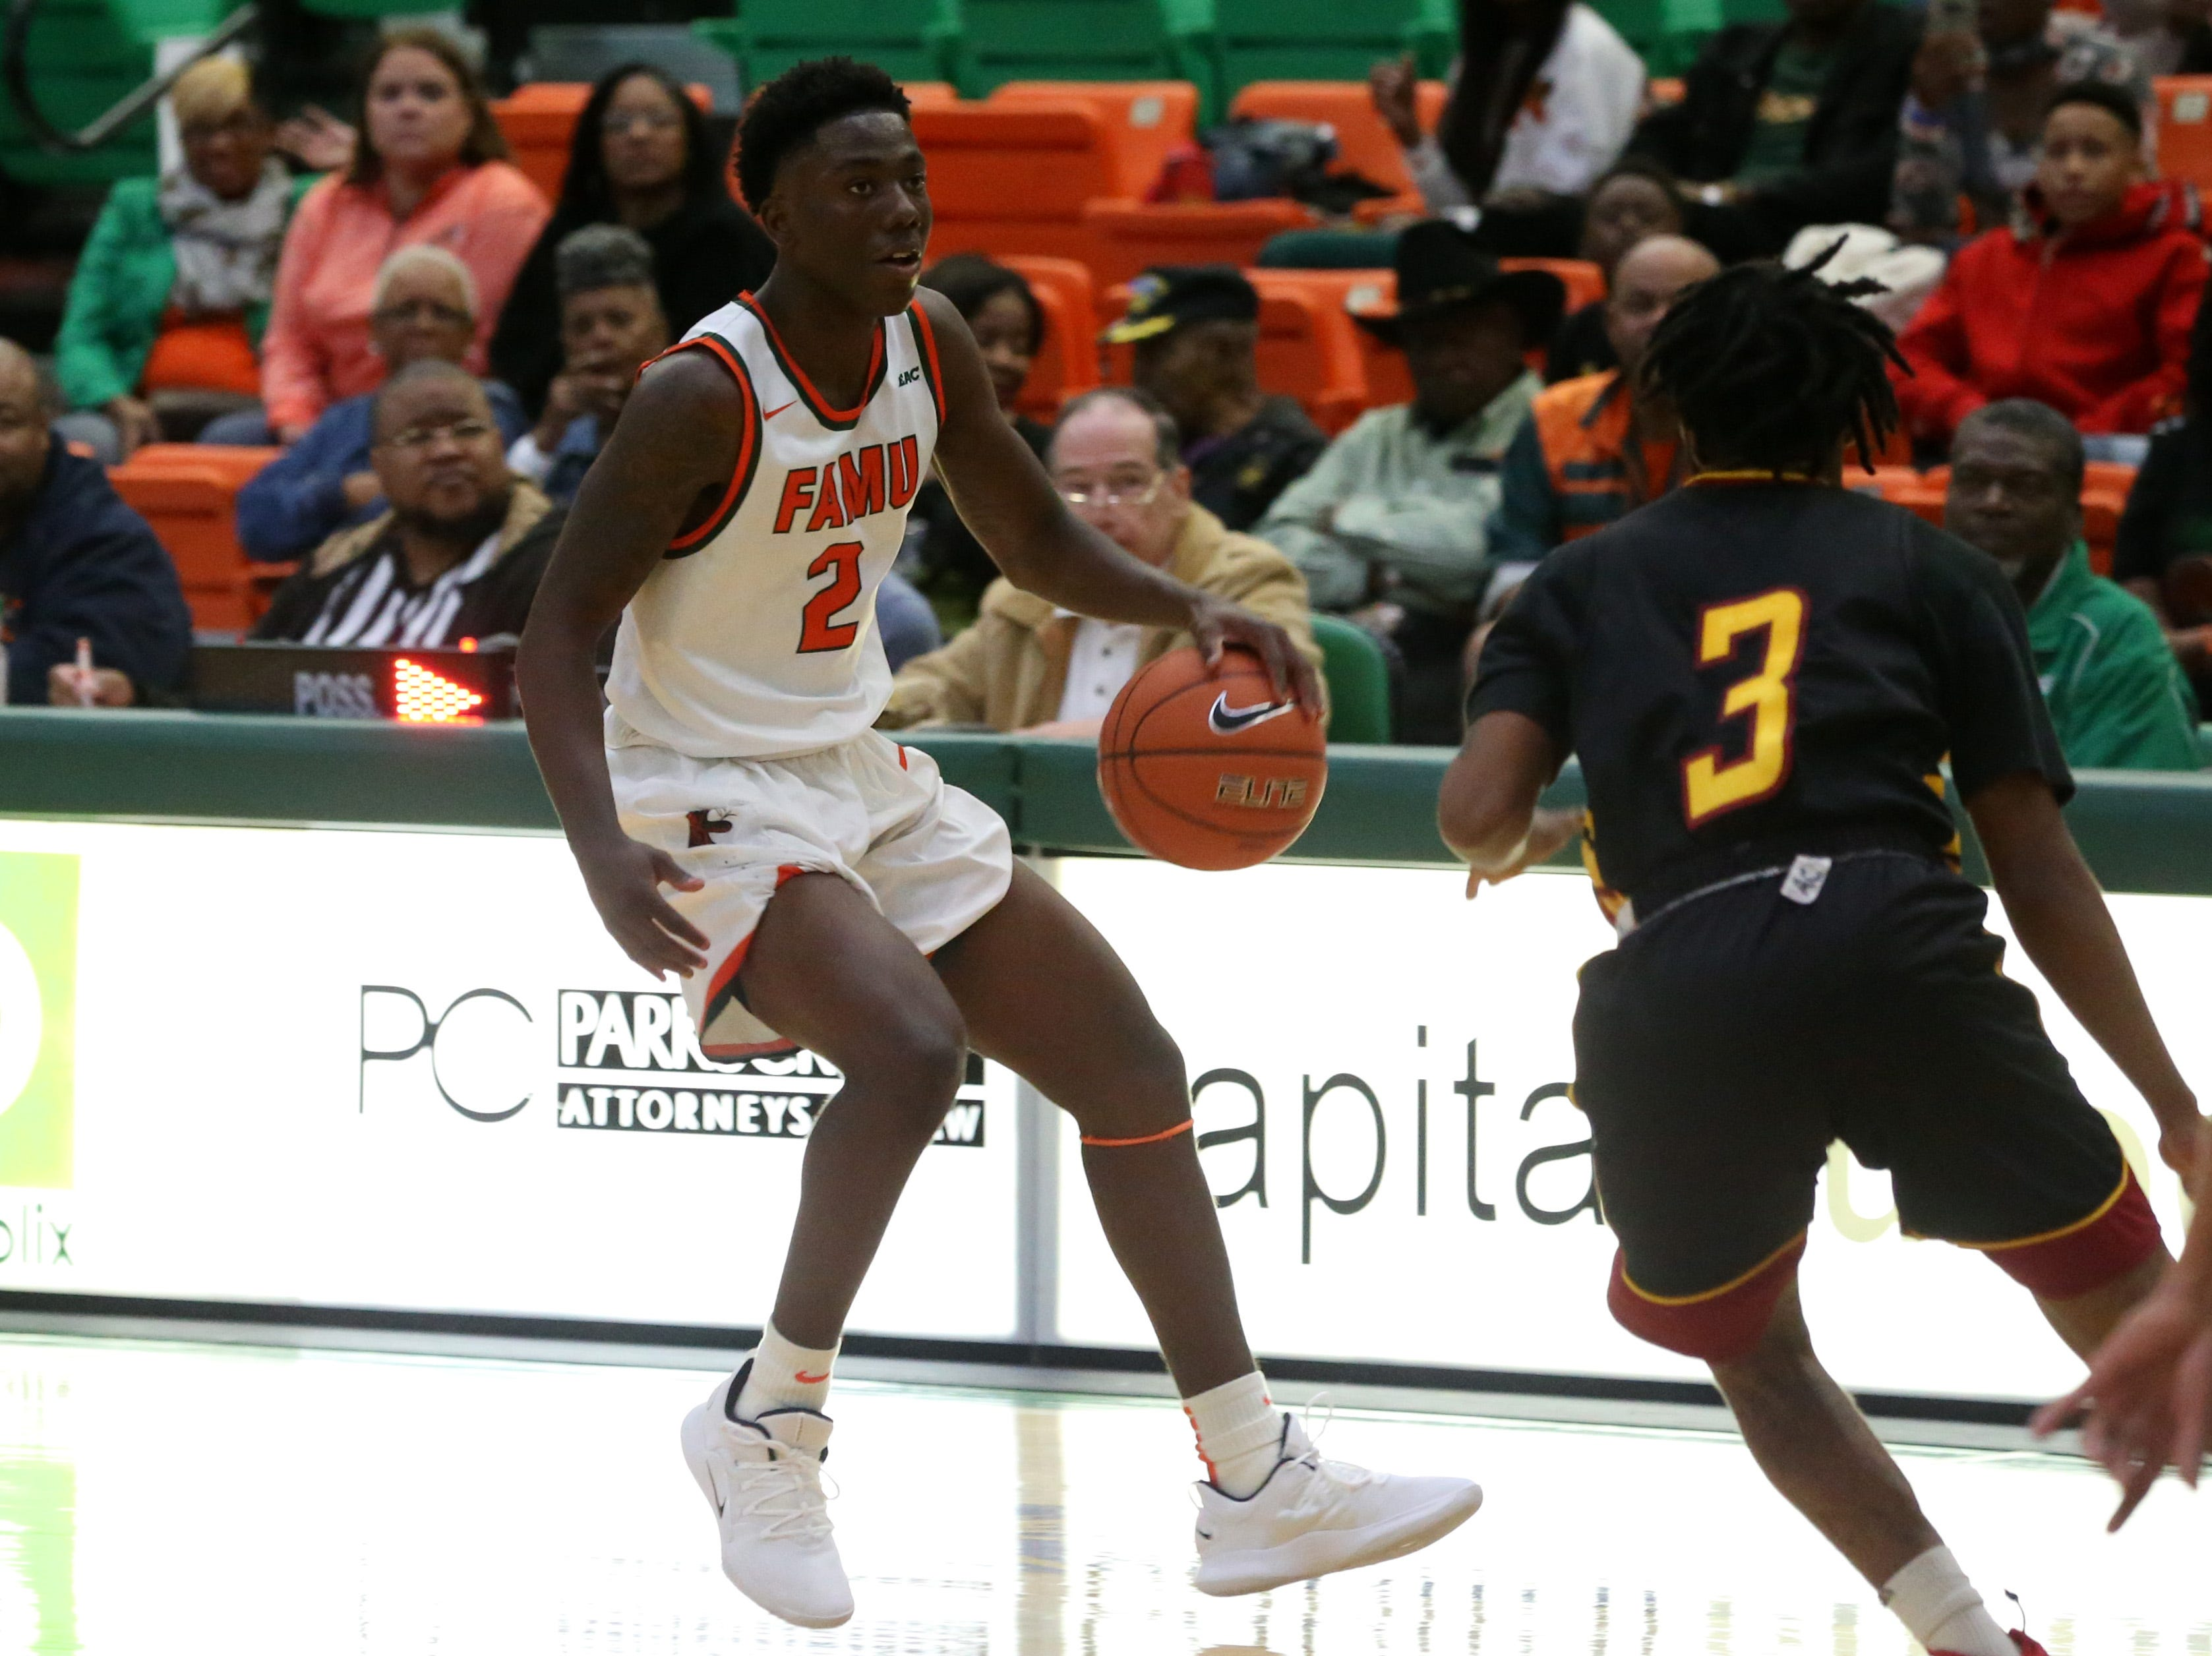 Florida A&M Rattlers guard Kamron Reaves (2) moves to get around his defender as the FAMU Rattlers take on the Tuskegee Golden Tigers in their first home game of the season in the Lawson Center, Saturday, Nov. 10, 2018.